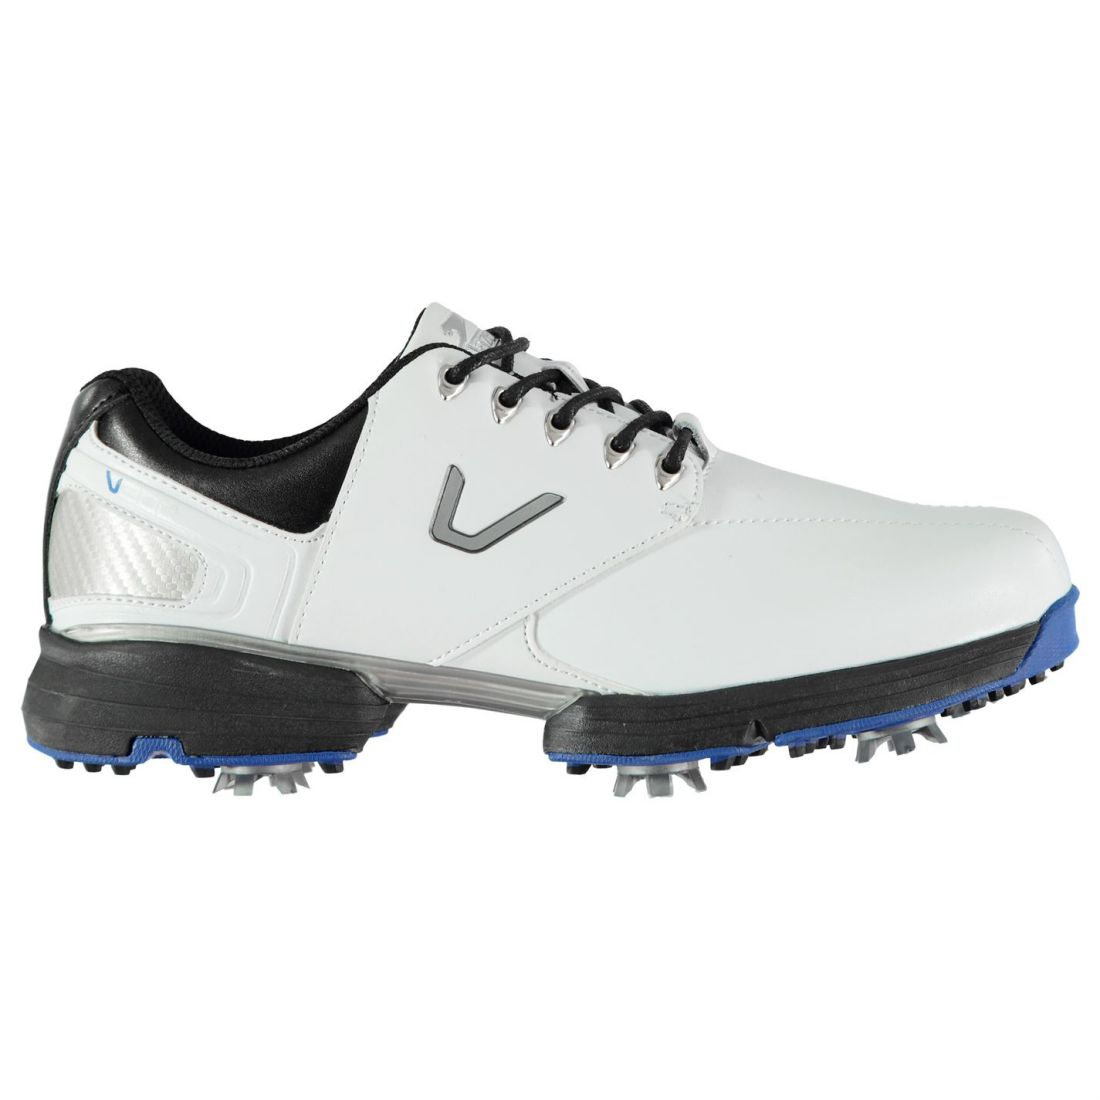 6add4eab1a2 Image is loading Slazenger-V300-Golf-Shoes-Mens-Gents-Spiked-Laces-